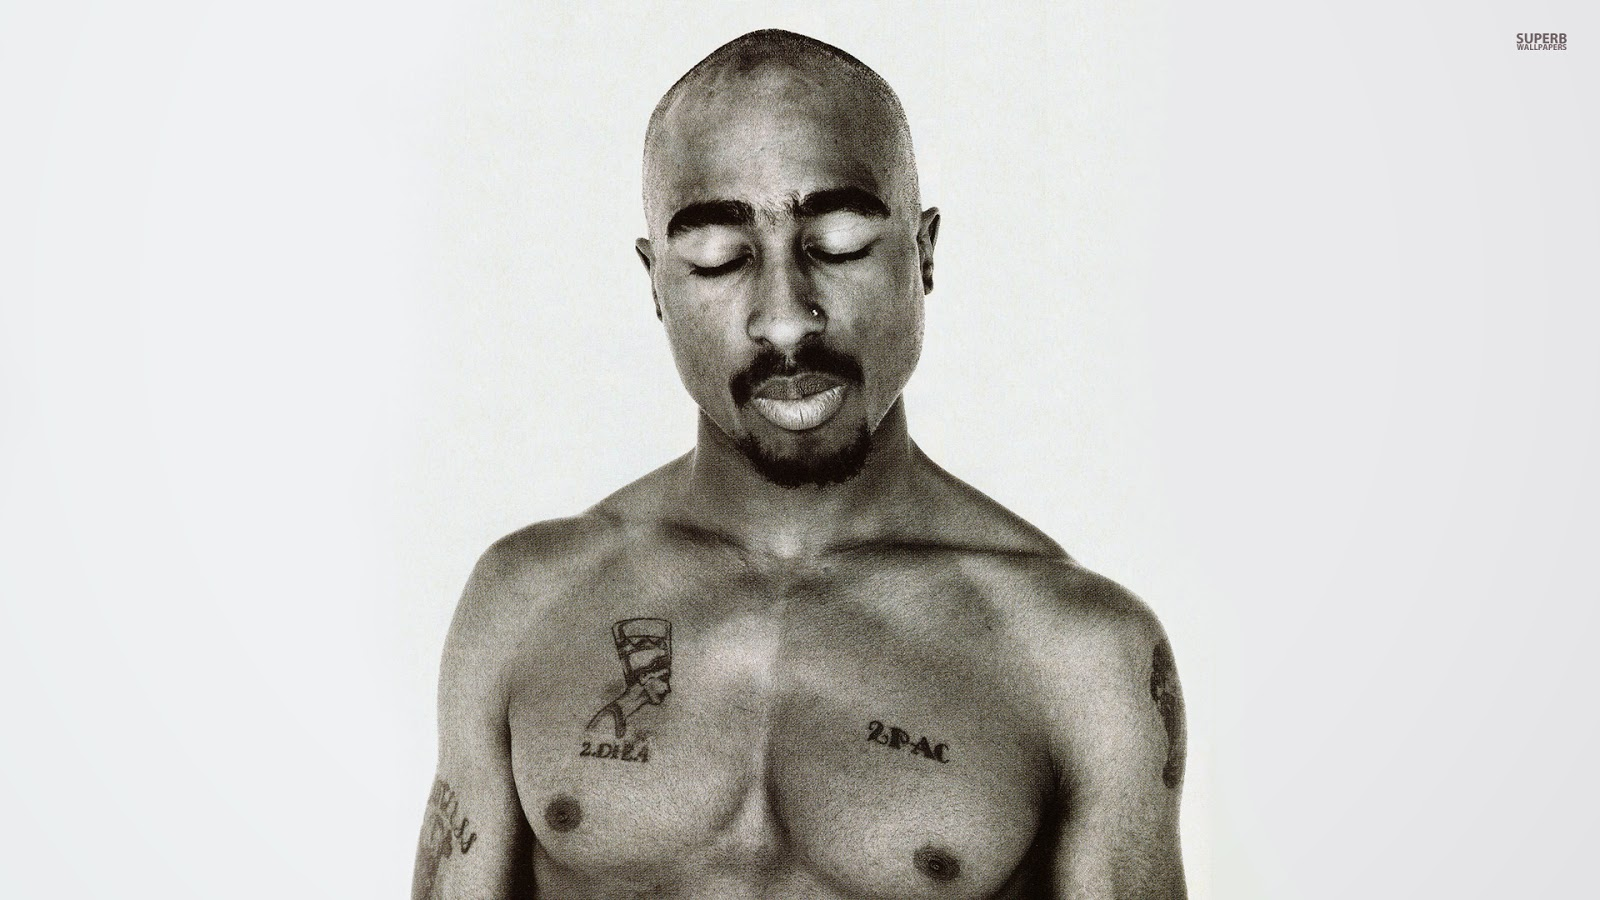 2pac discography torrent download